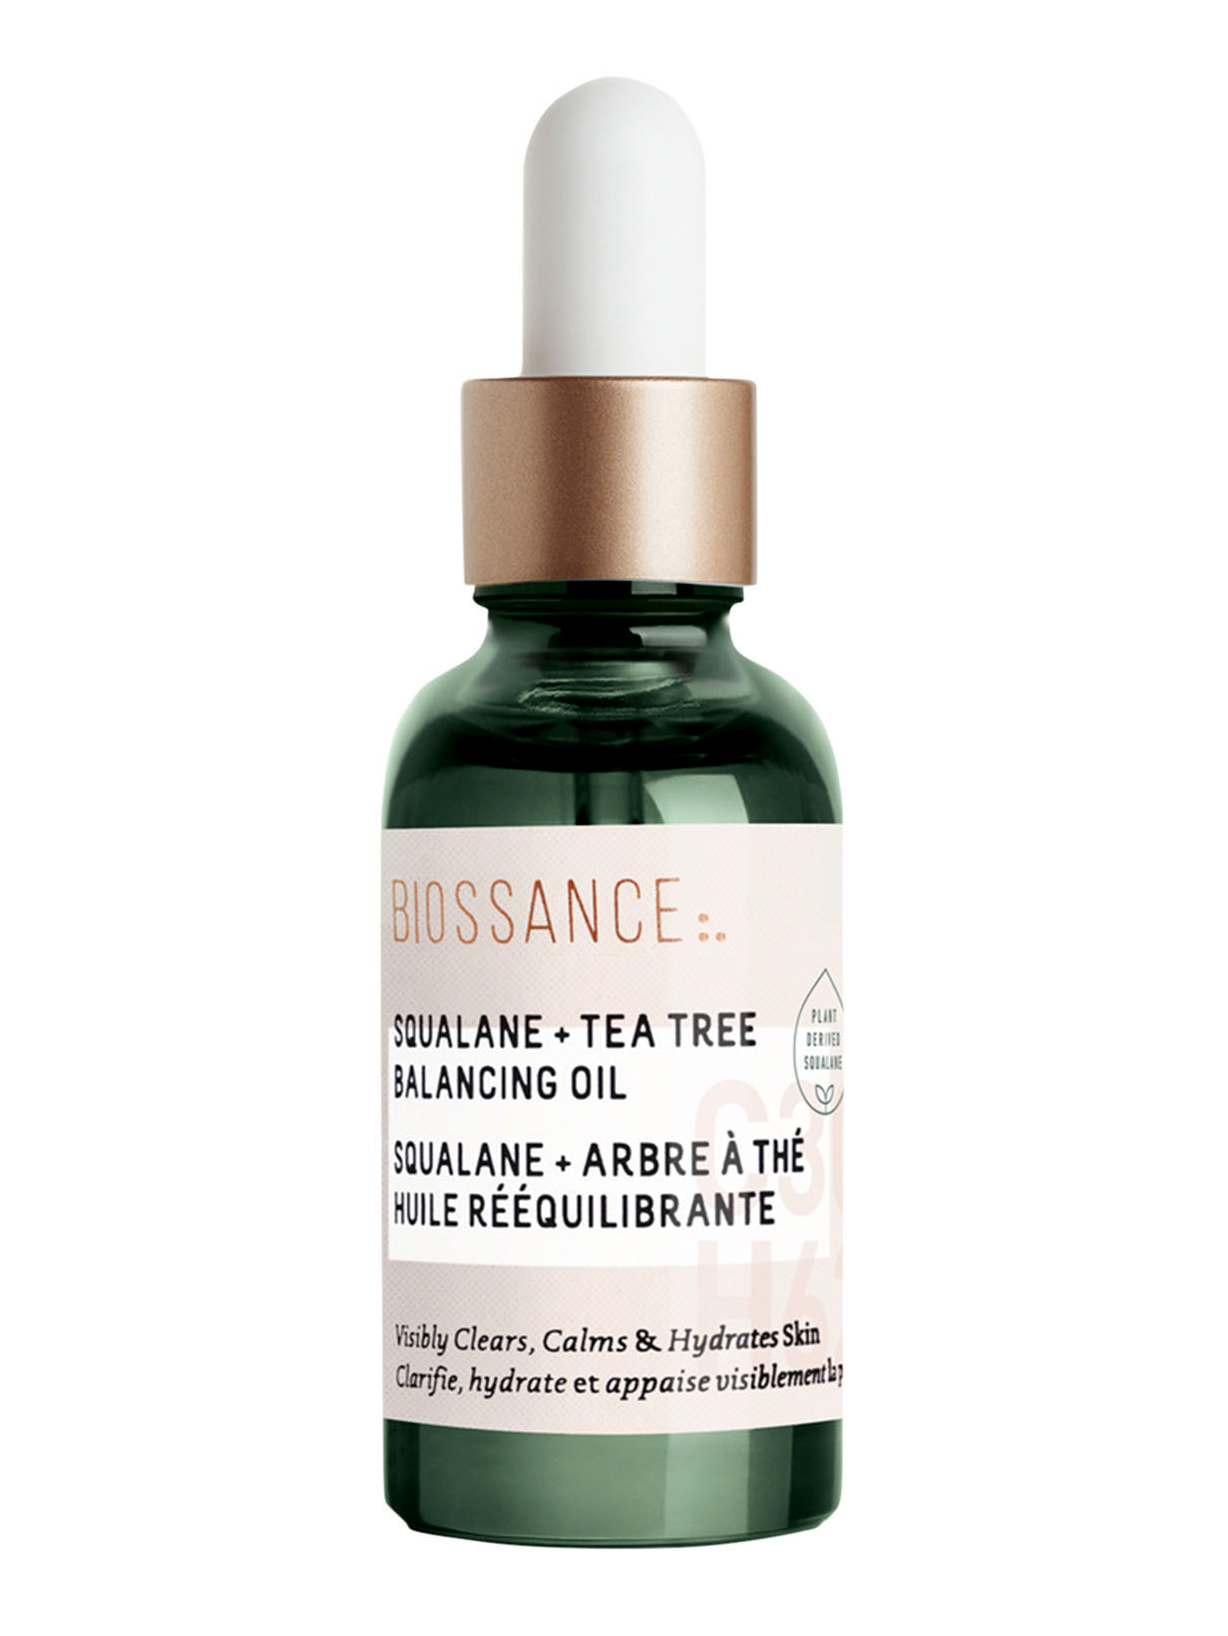 biossance squalane tea tree balancing oil